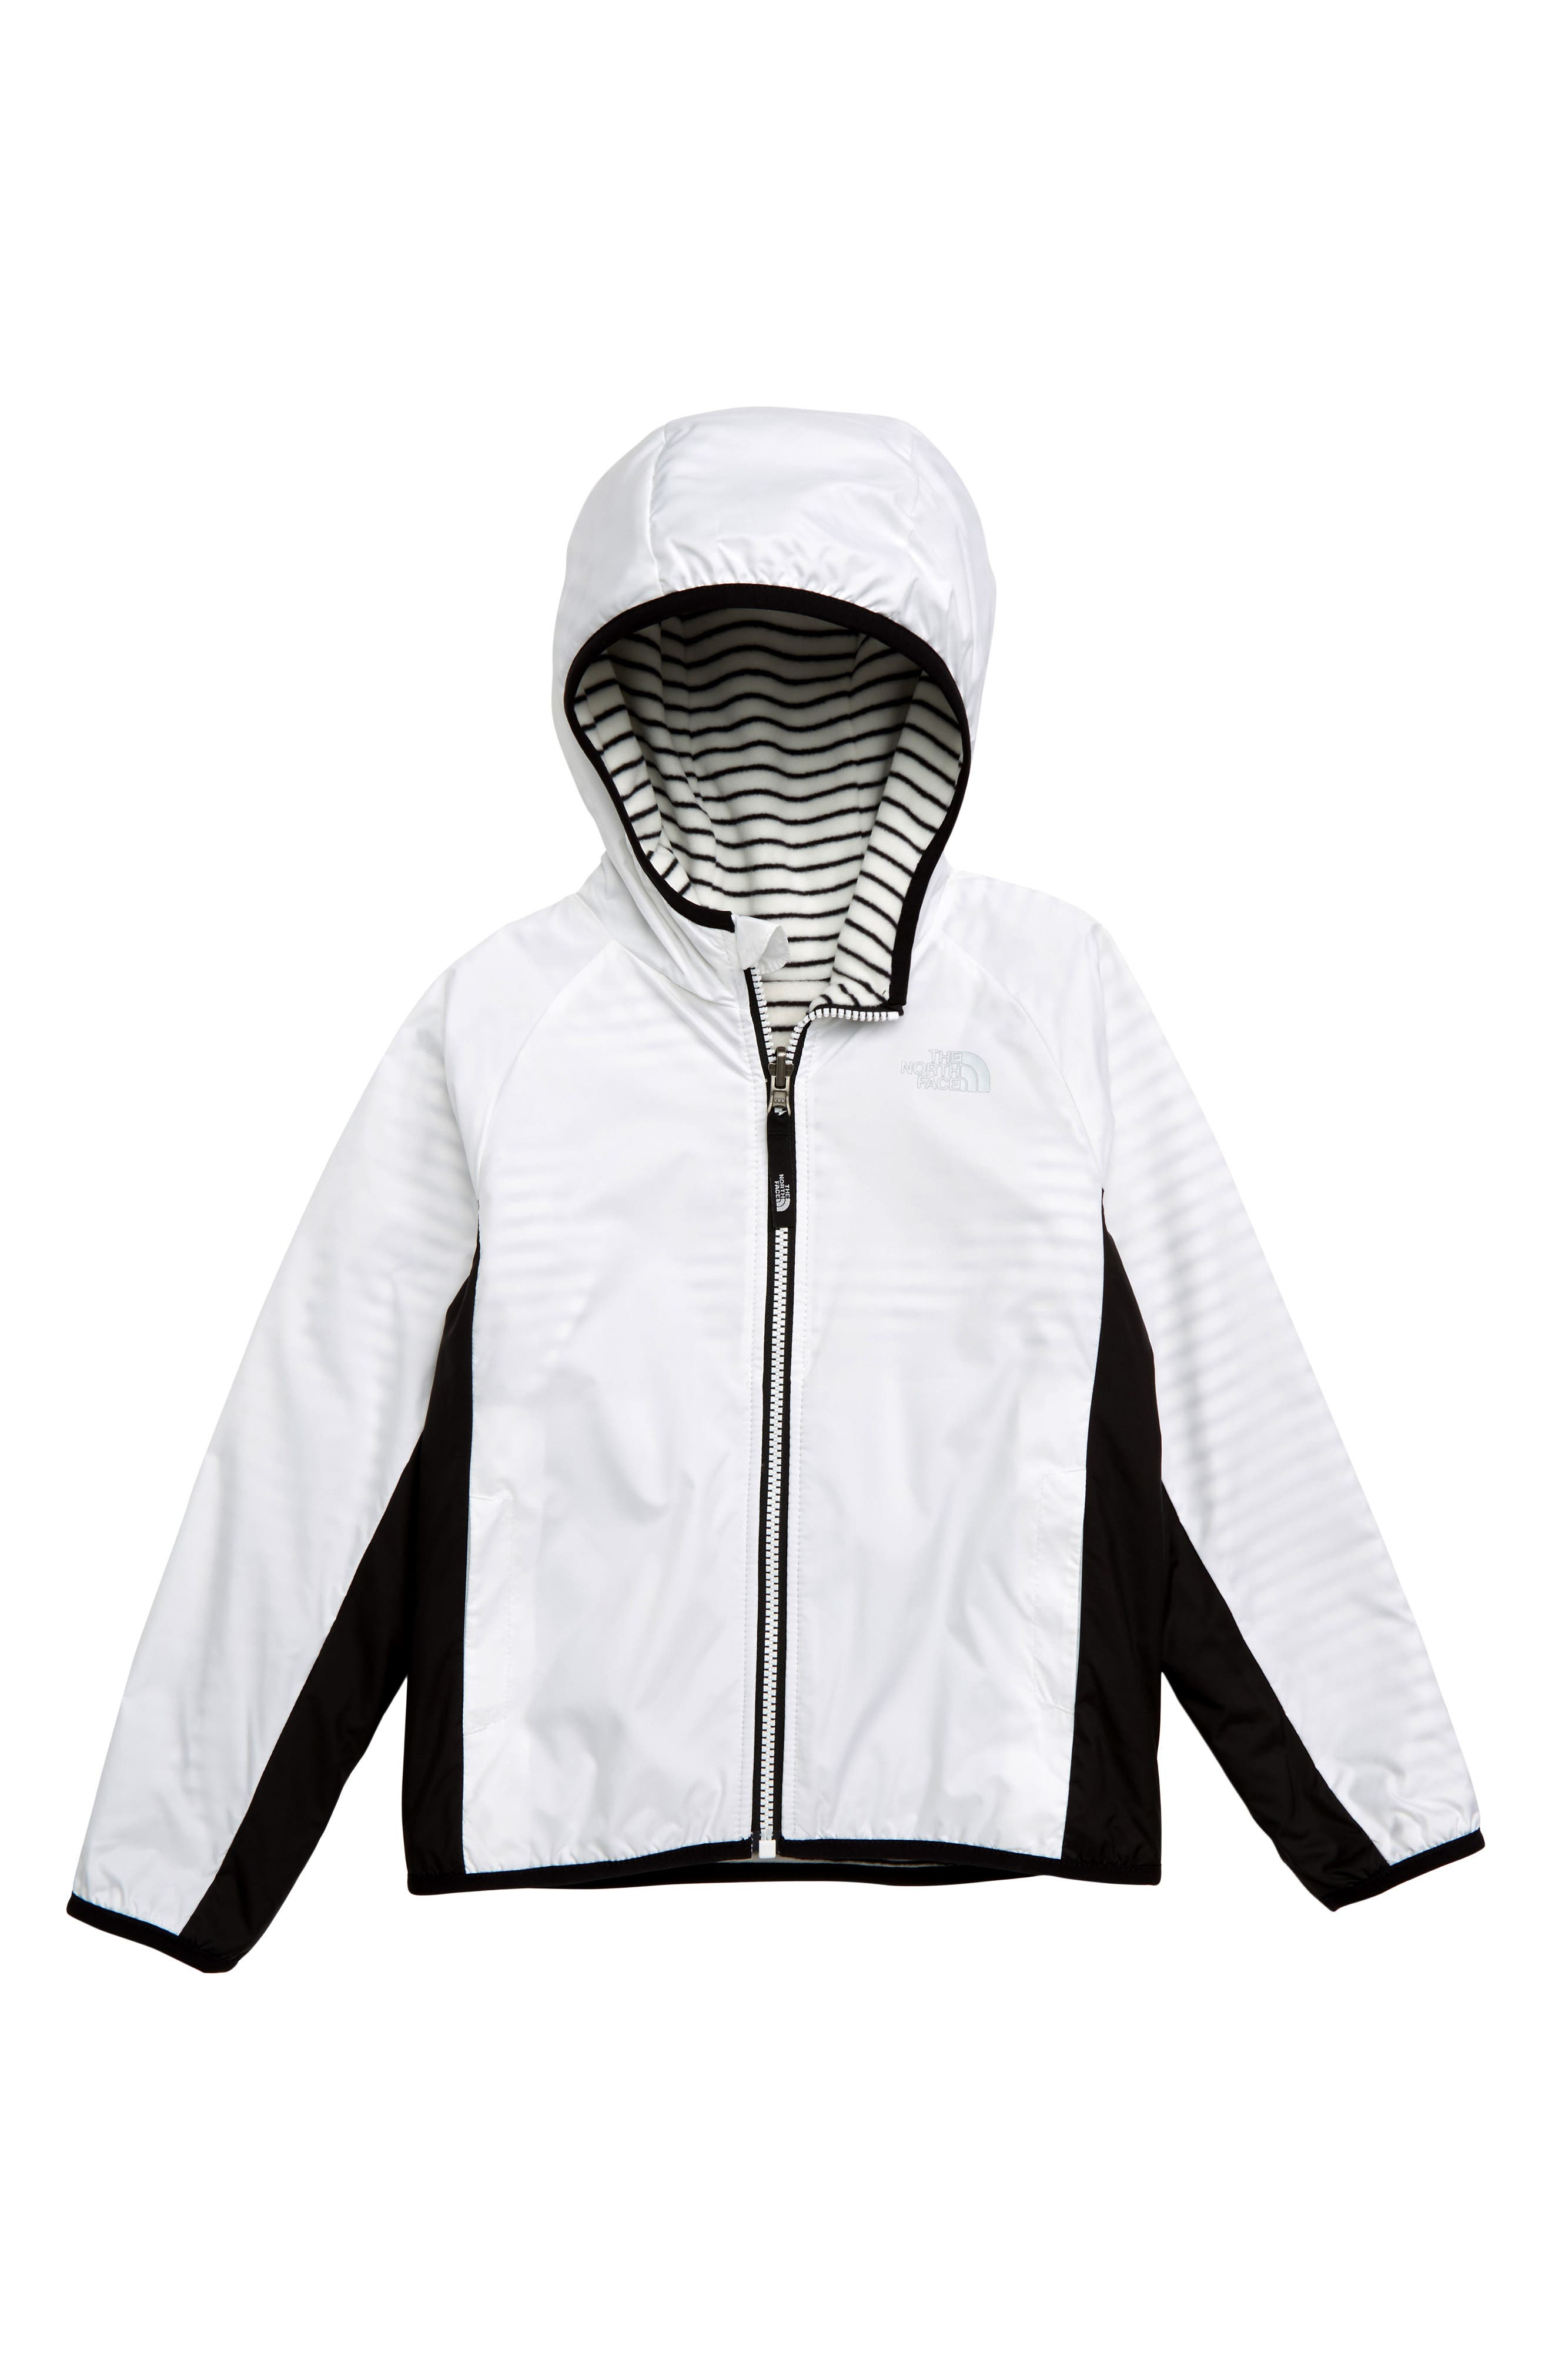 THE NORTH FACE,                             Breezeway Reversible Water Repellent Windproof Jacket,                             Main thumbnail 1, color,                             TNF WHITE